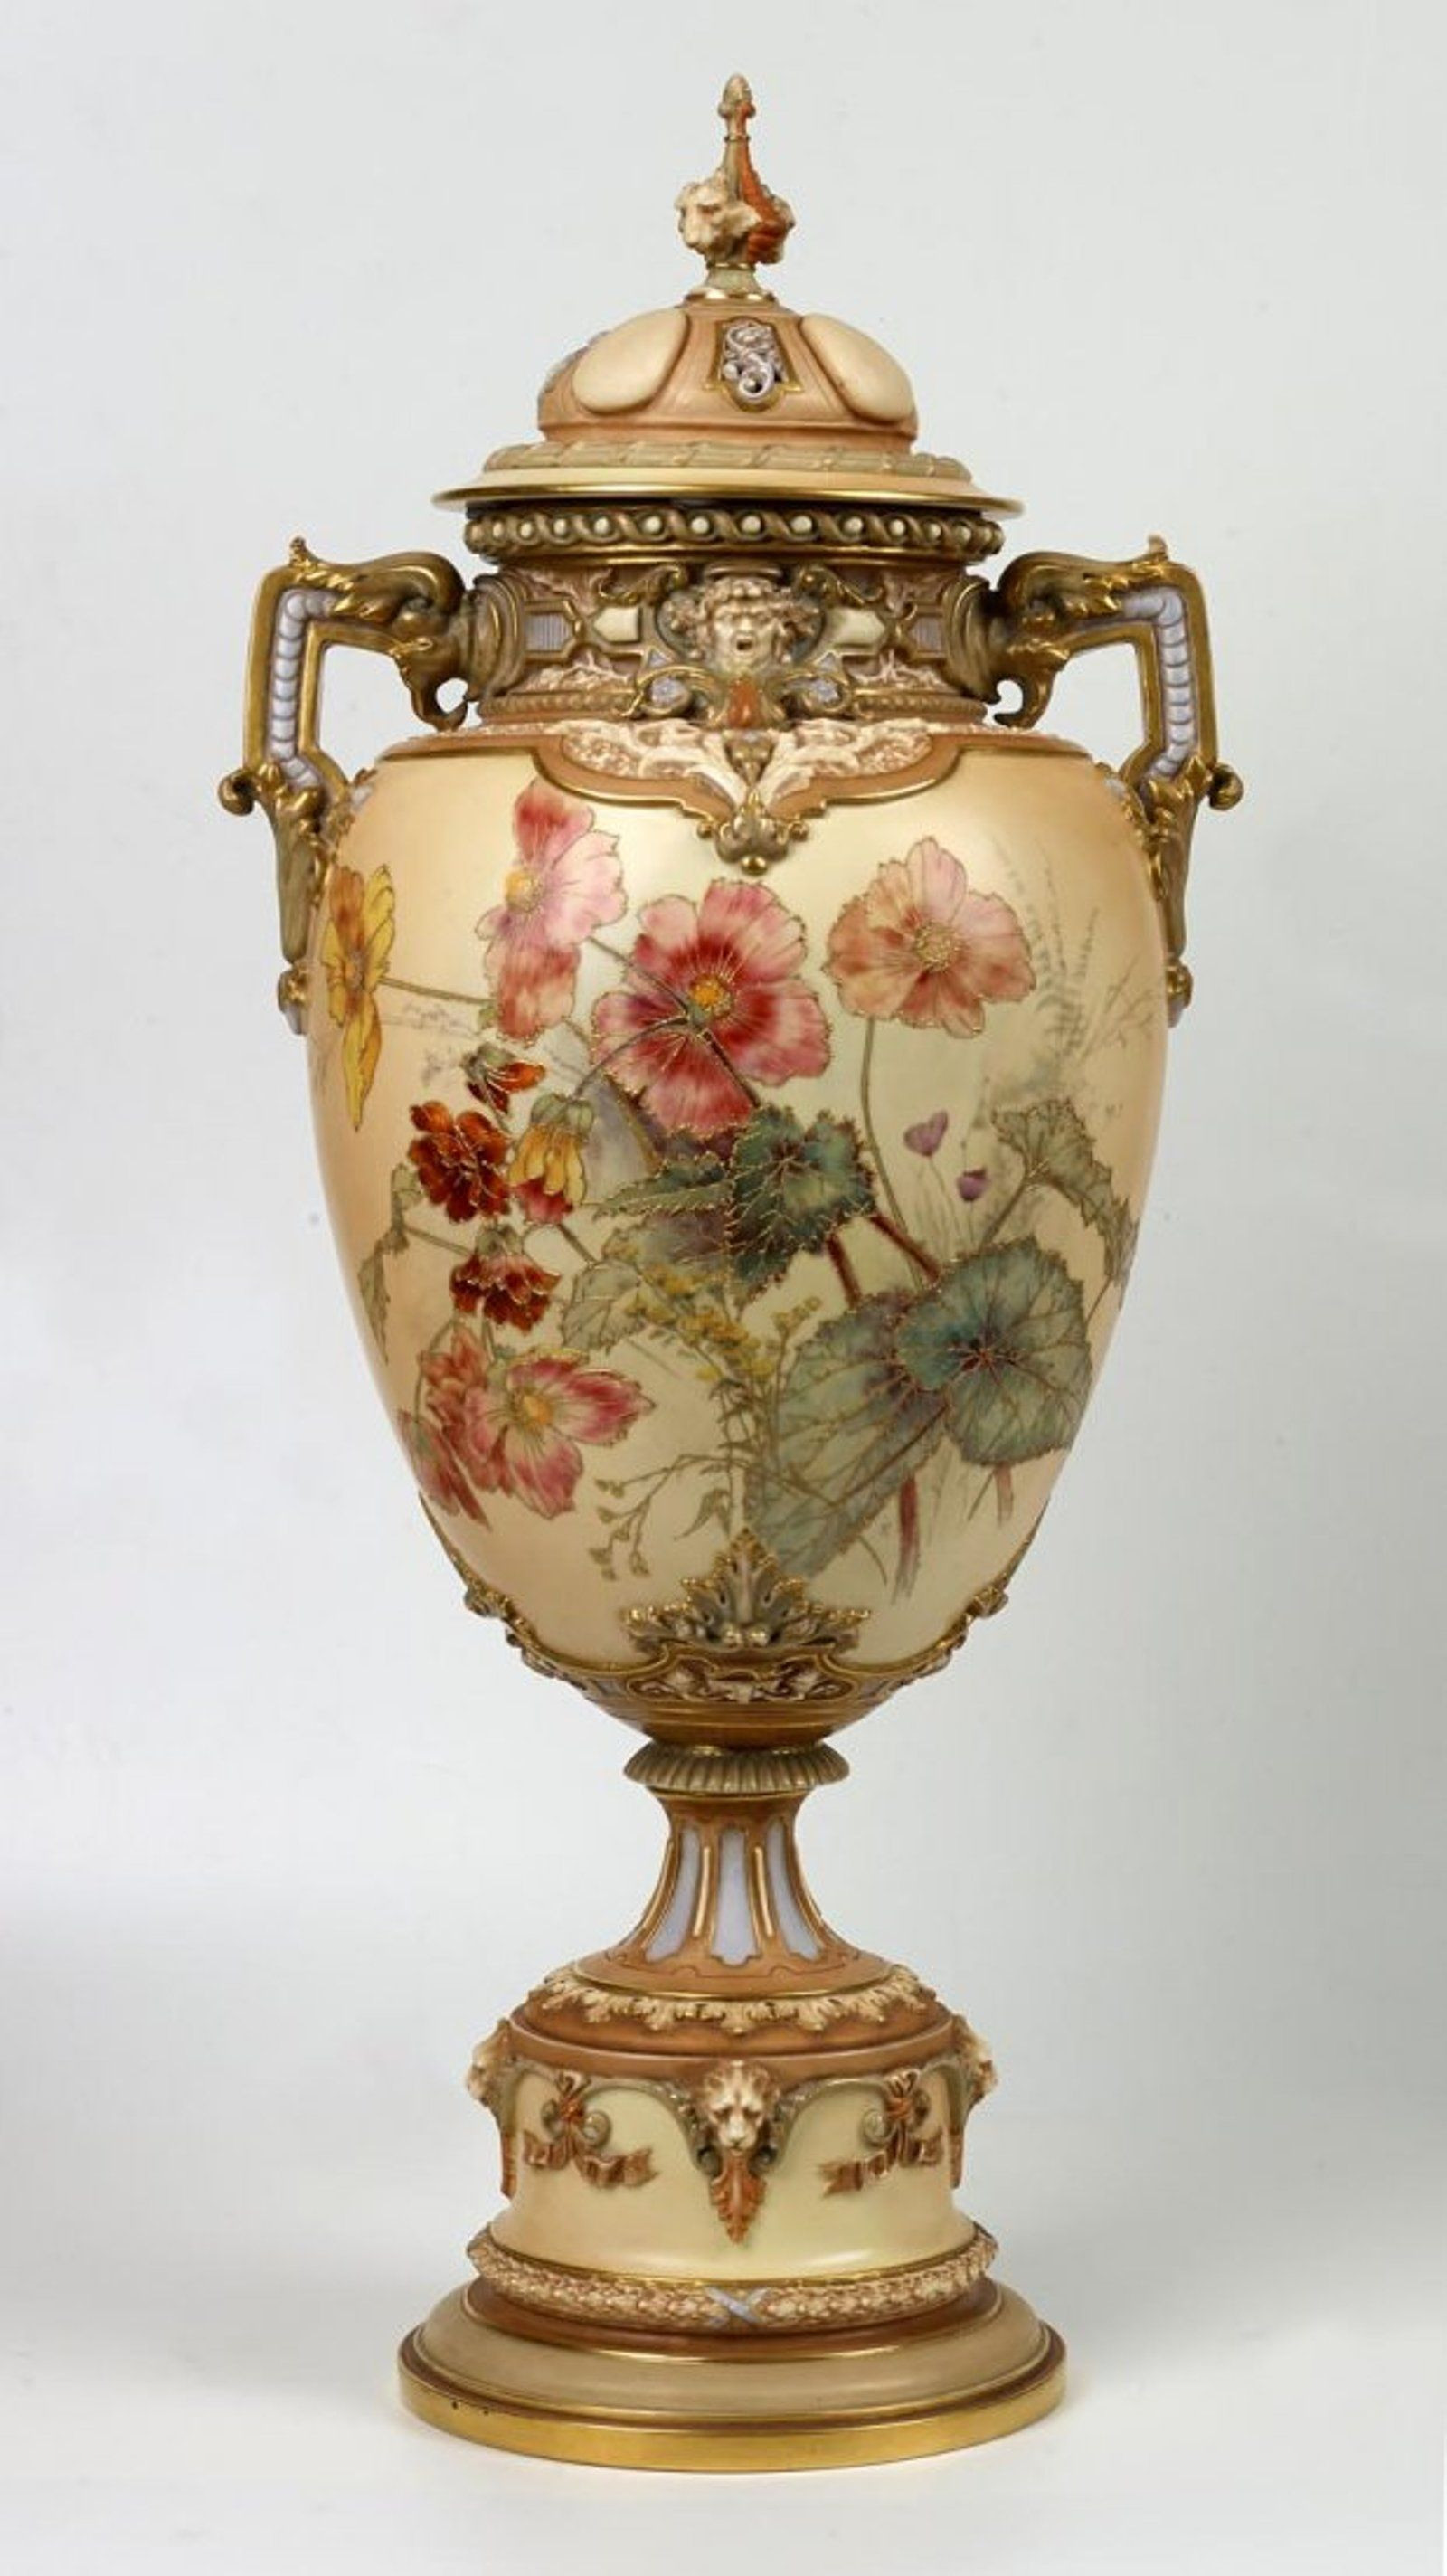 gold urn vase of a large royal worcester covered urn english circa 1894 keramia throughout a large royal worcester covered urn english circa 1894